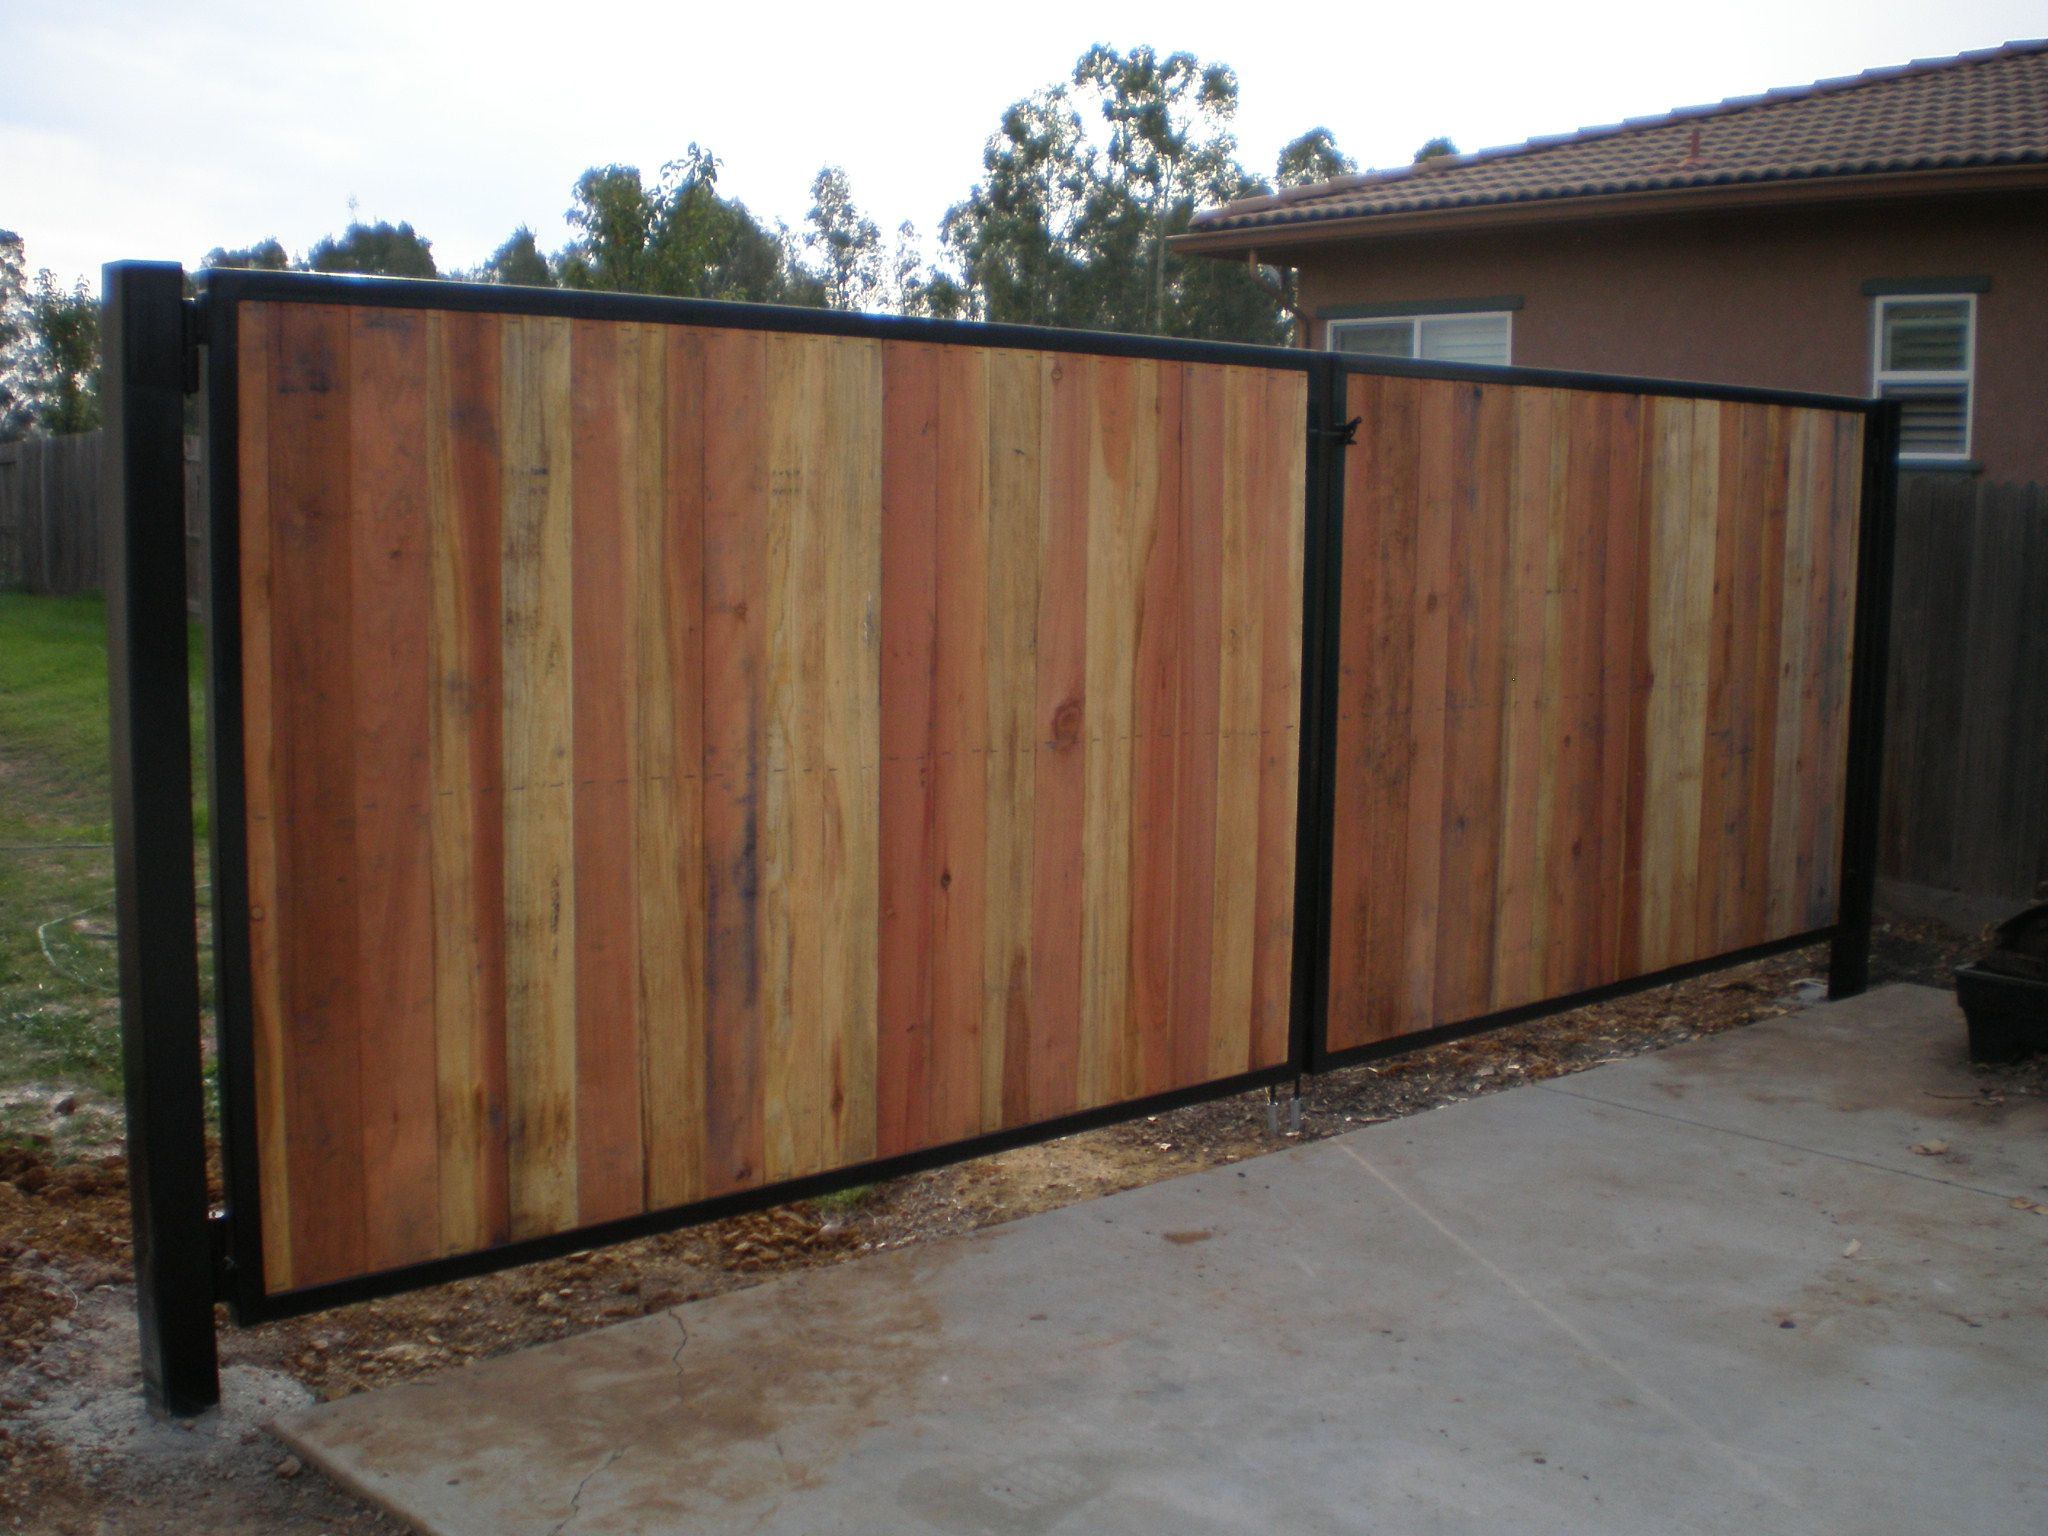 wood fence with metal gate frame has great advice and tips to. Black Bedroom Furniture Sets. Home Design Ideas